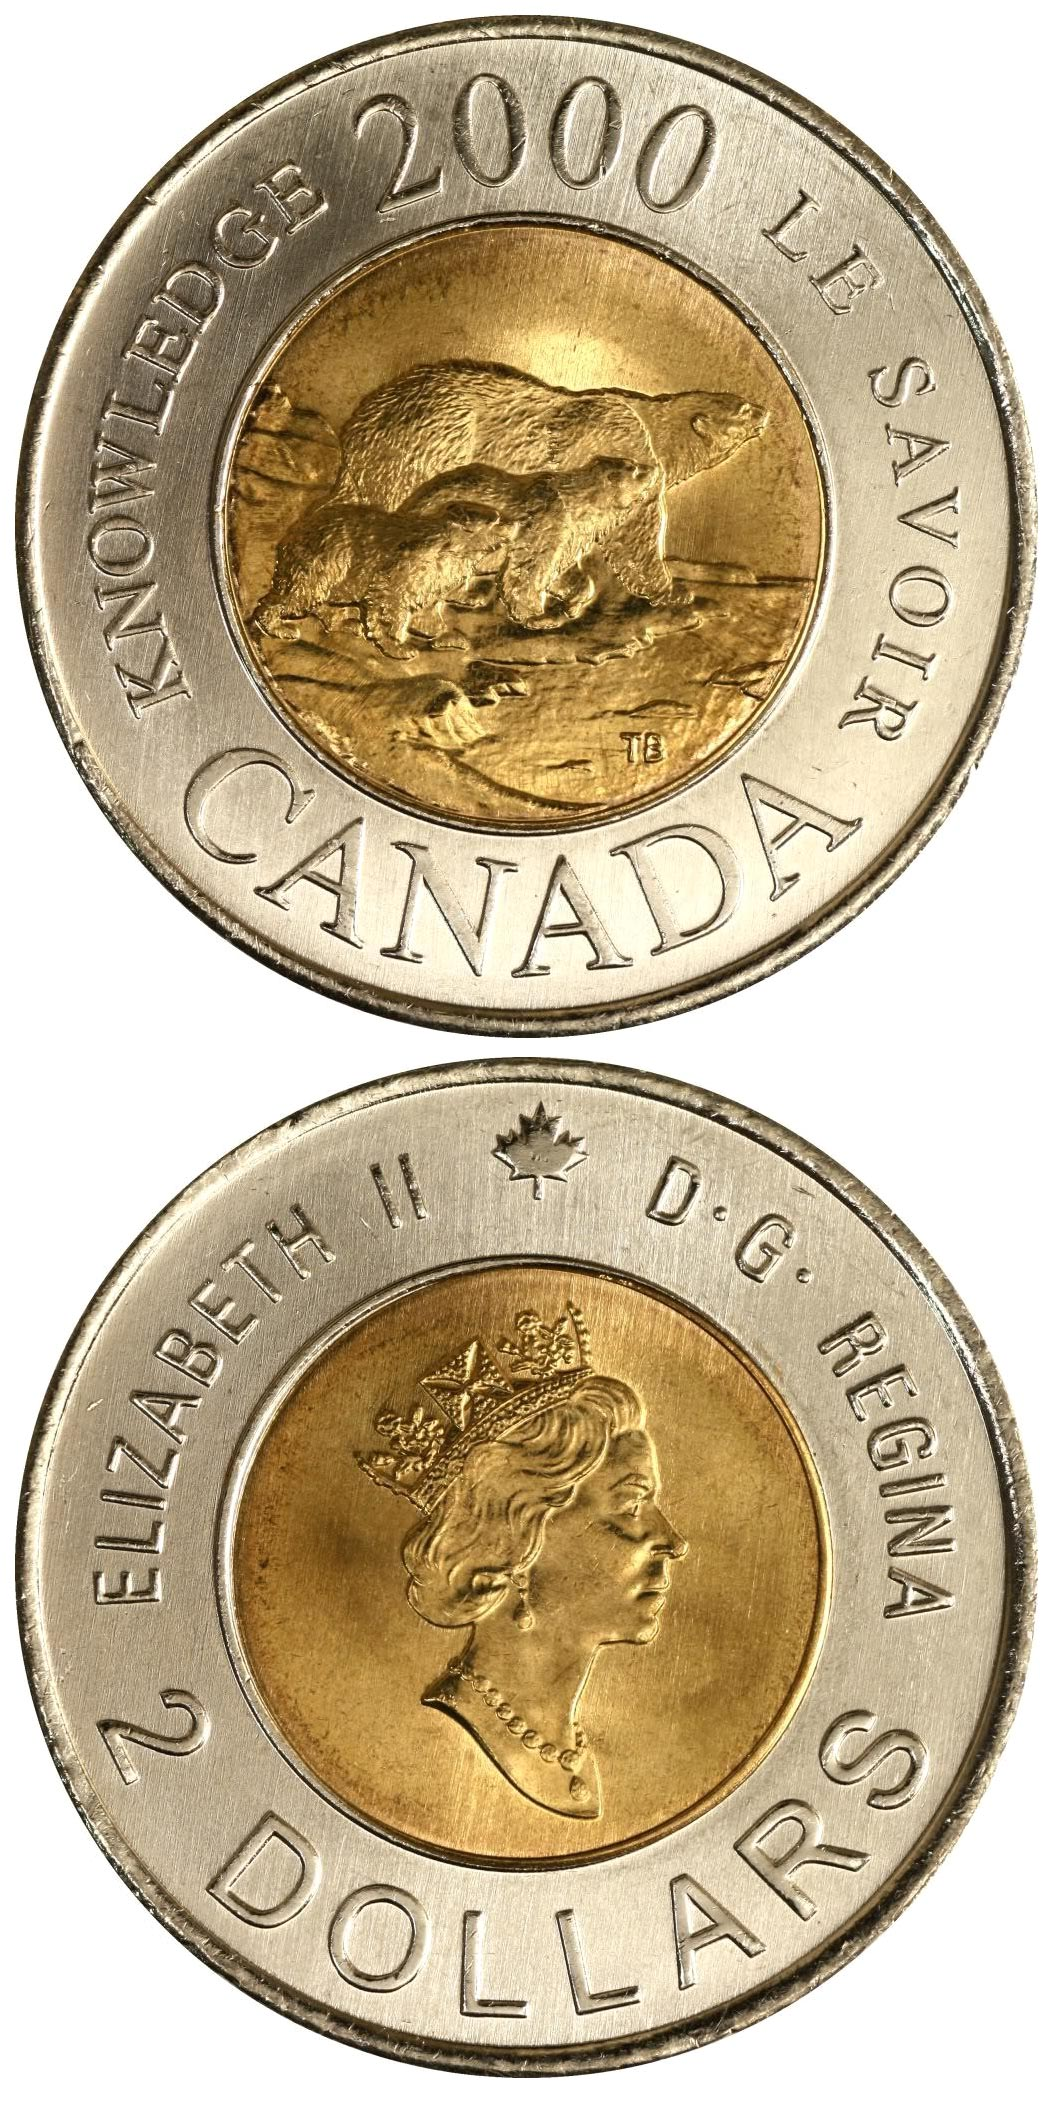 Canada 2 Dollar Commemorative Coins Non-Coloured Toonie Set